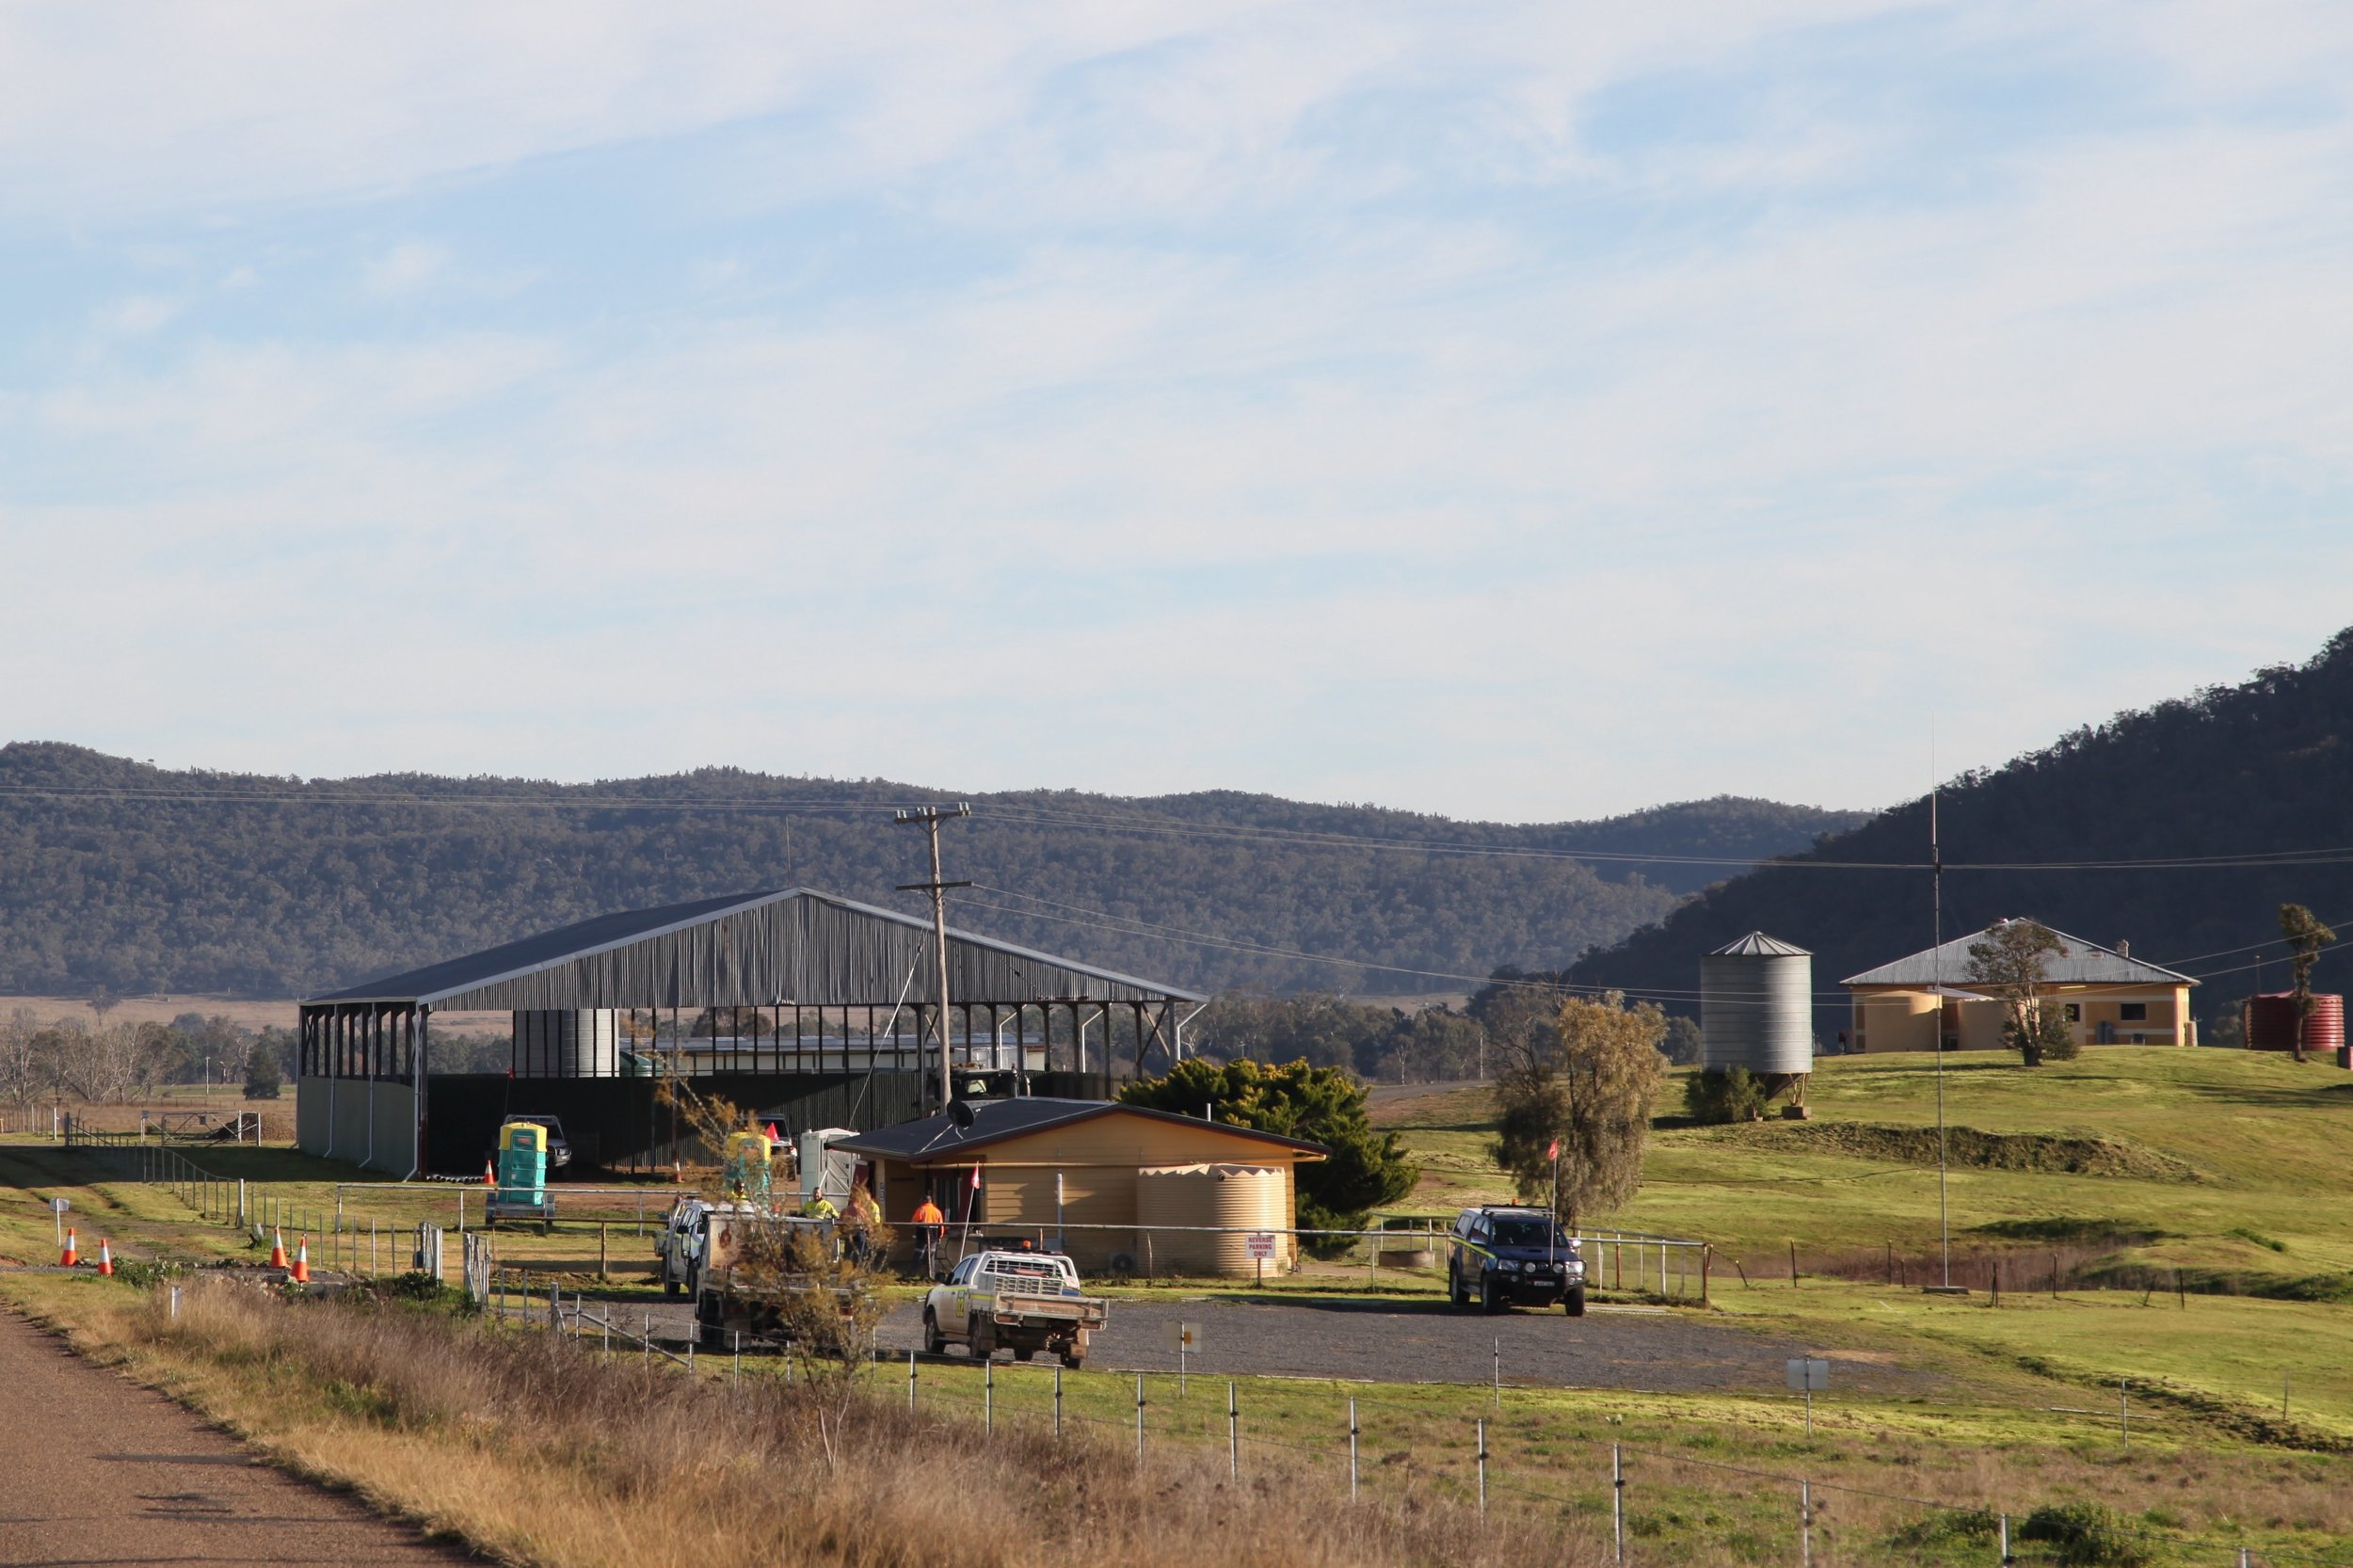 """KEPCO have begun exploratory works and have bought many properties in Bylong (as at July 2017 the company had bought """"more than 13,000 hectares of Bylong Valley land since 2010"""" according to the  Newcastle Herald )."""